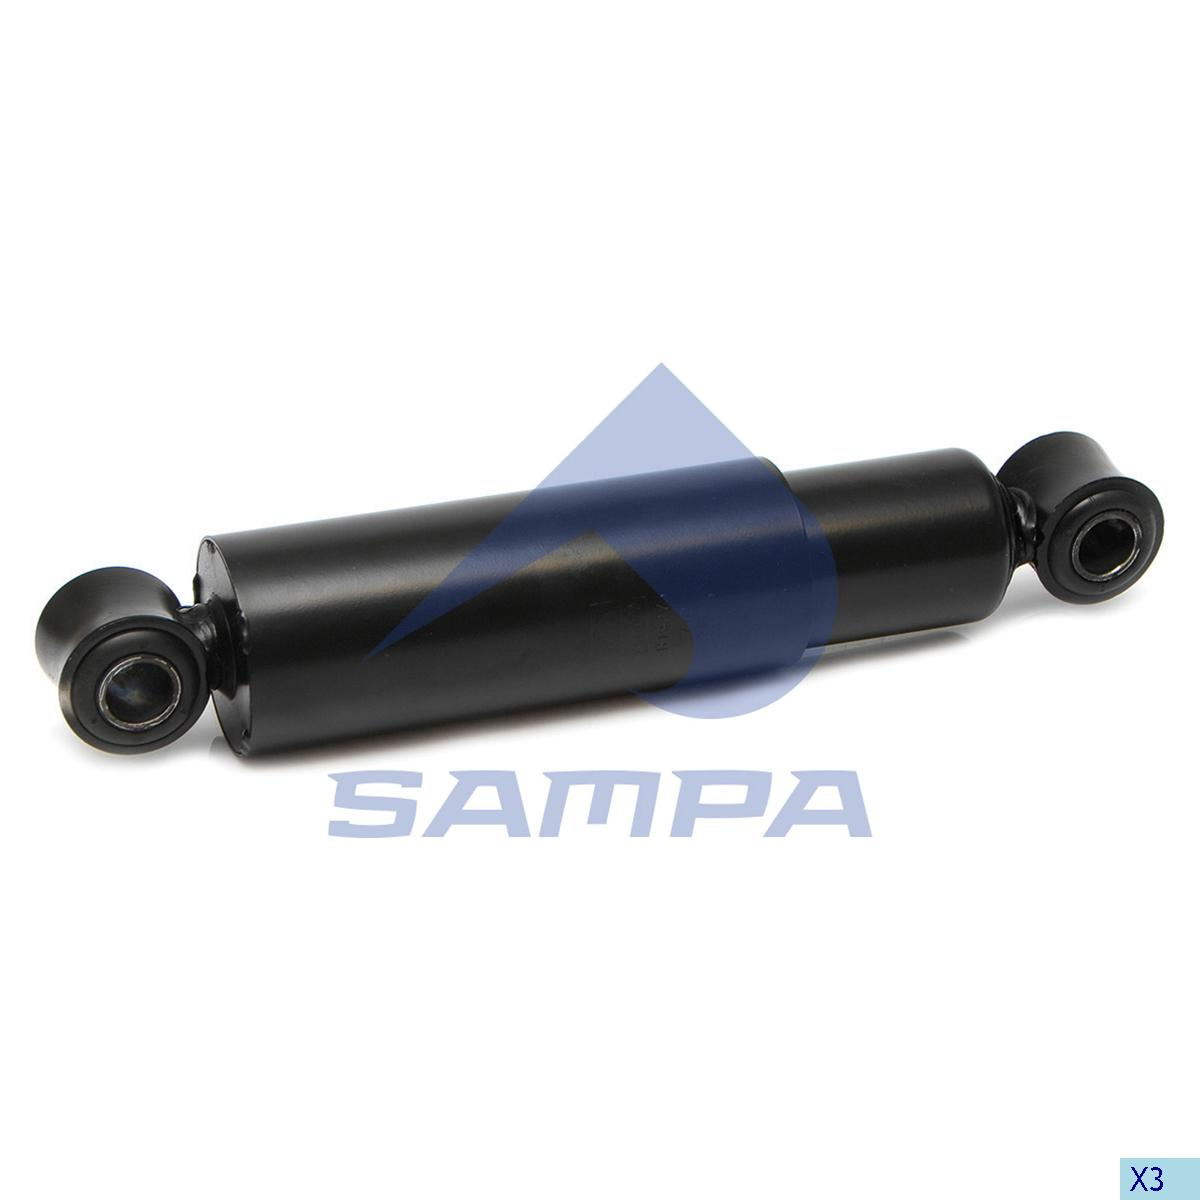 Shock Absorber, Bergische Achsen, Suspension